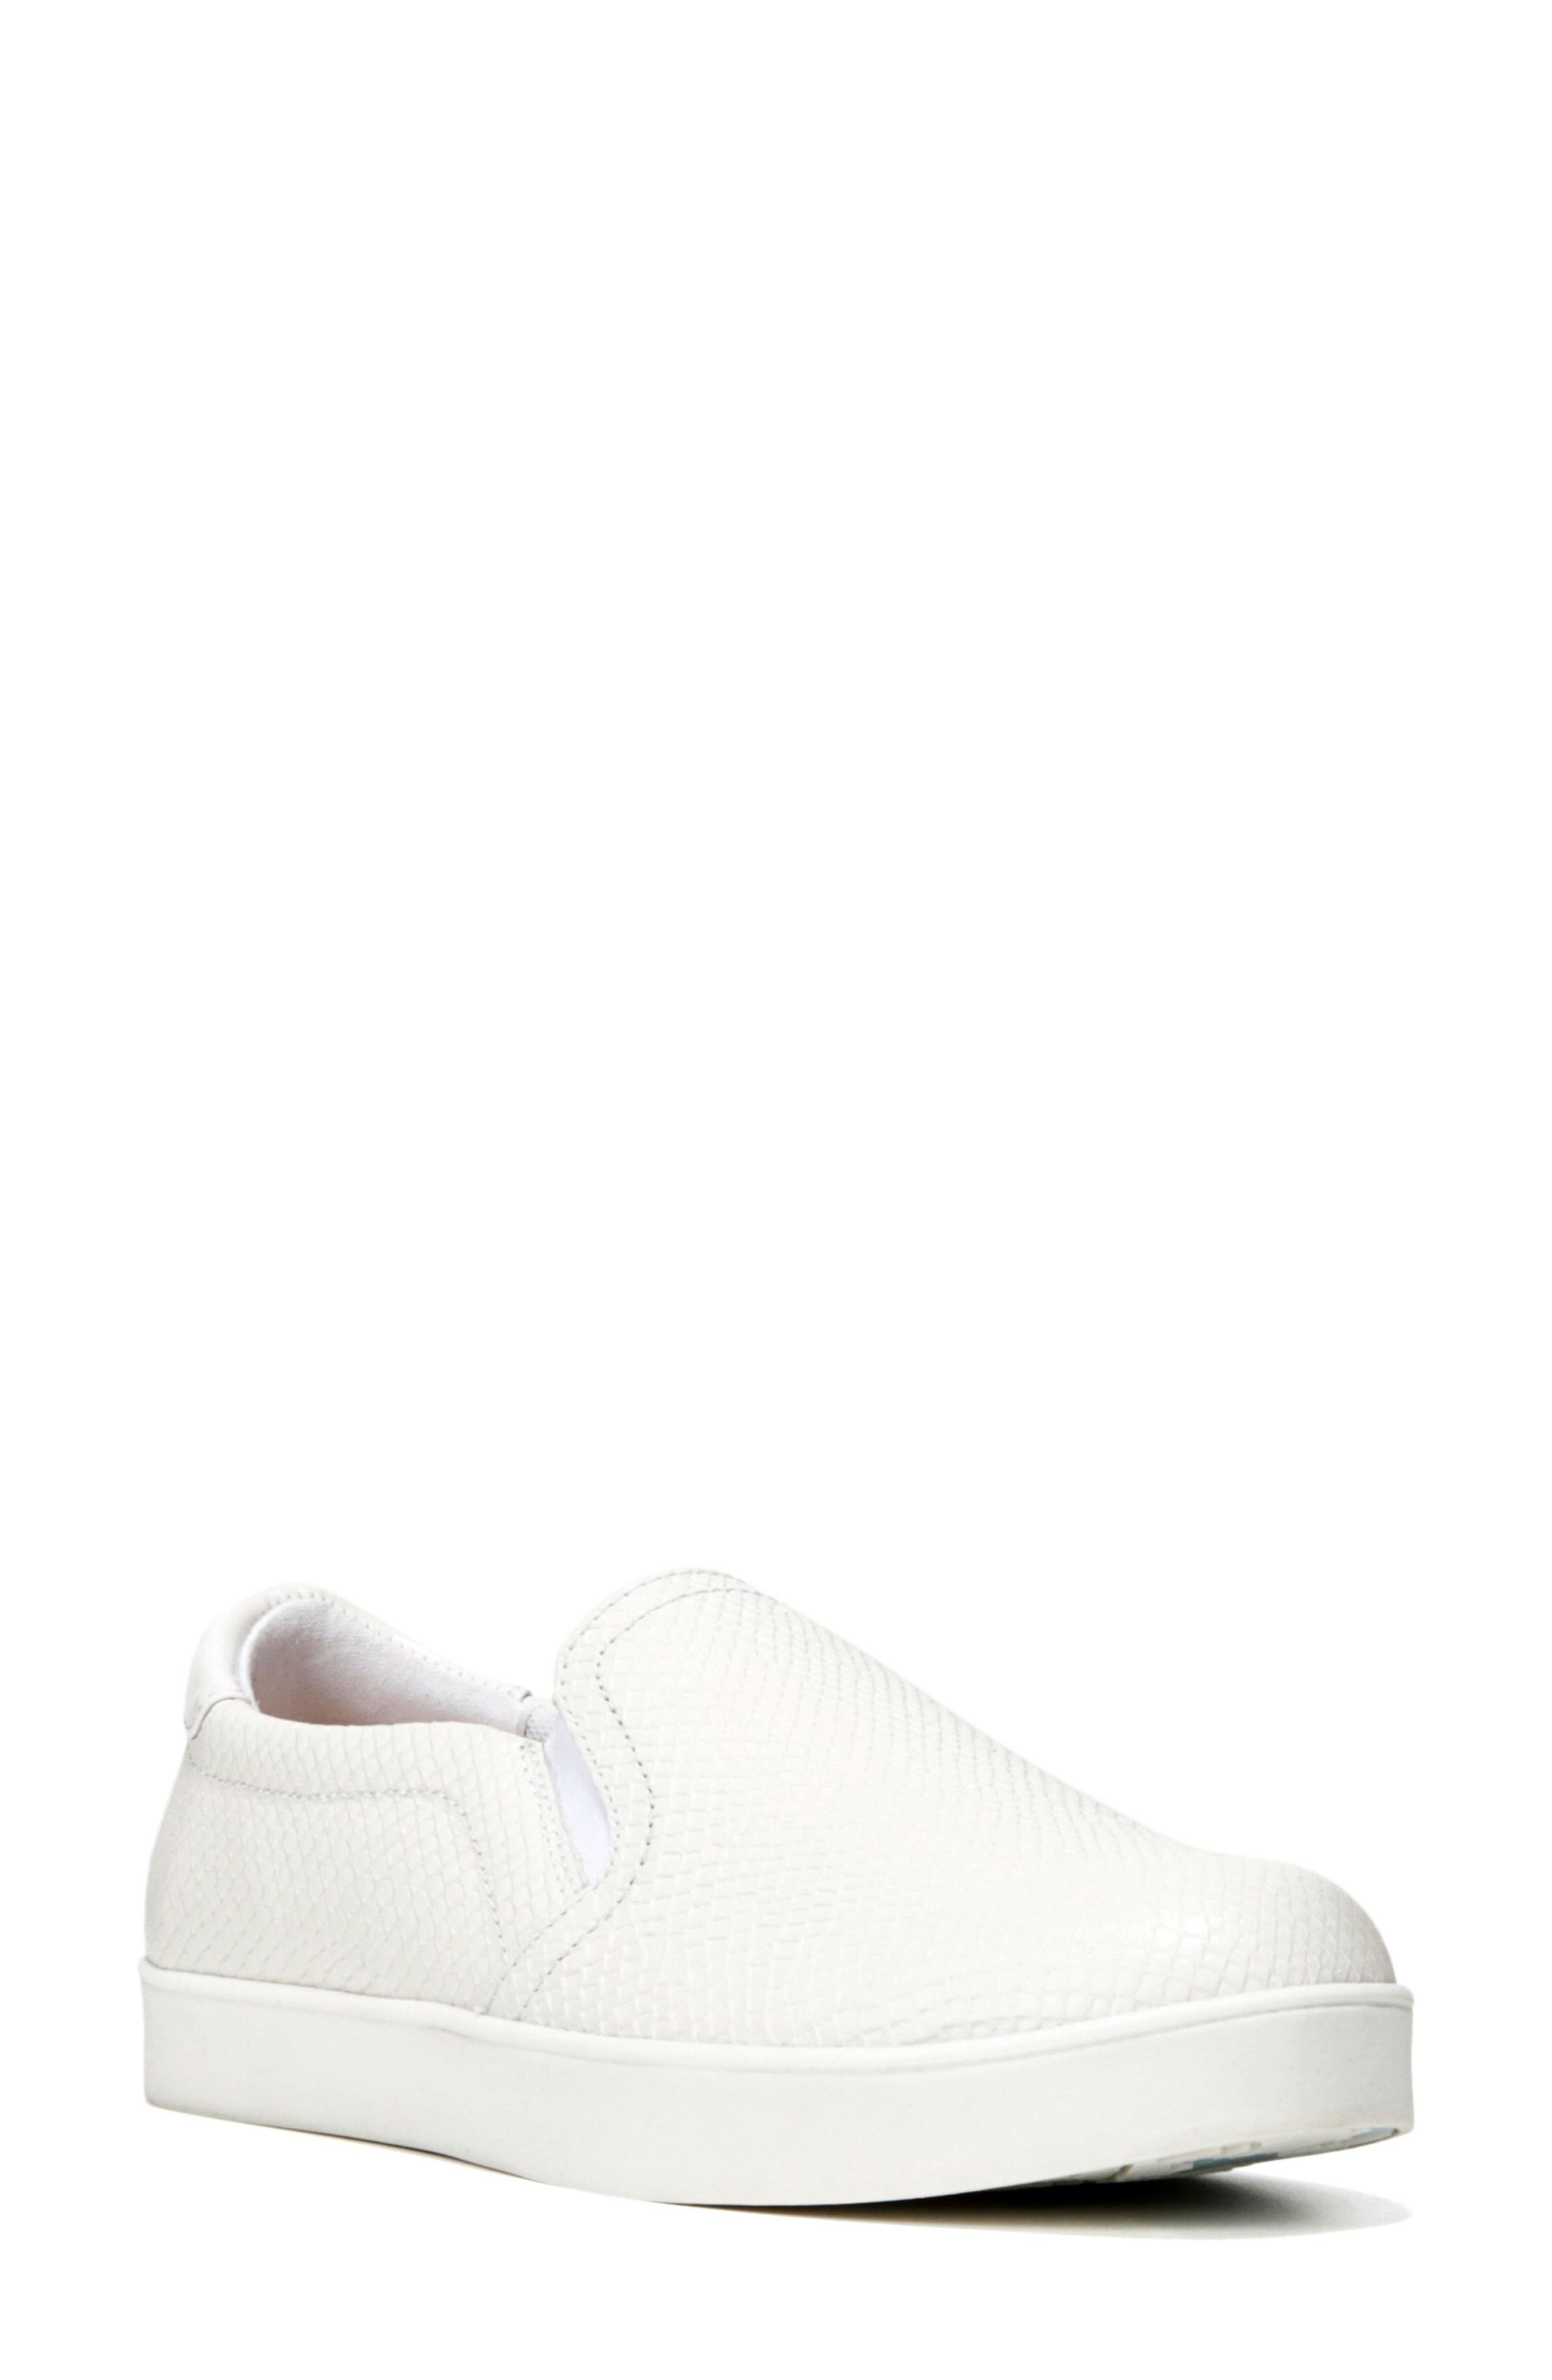 Original Collection 'Scout' Slip On Sneaker,                         Main,                         color, GARDENIA LEATHER